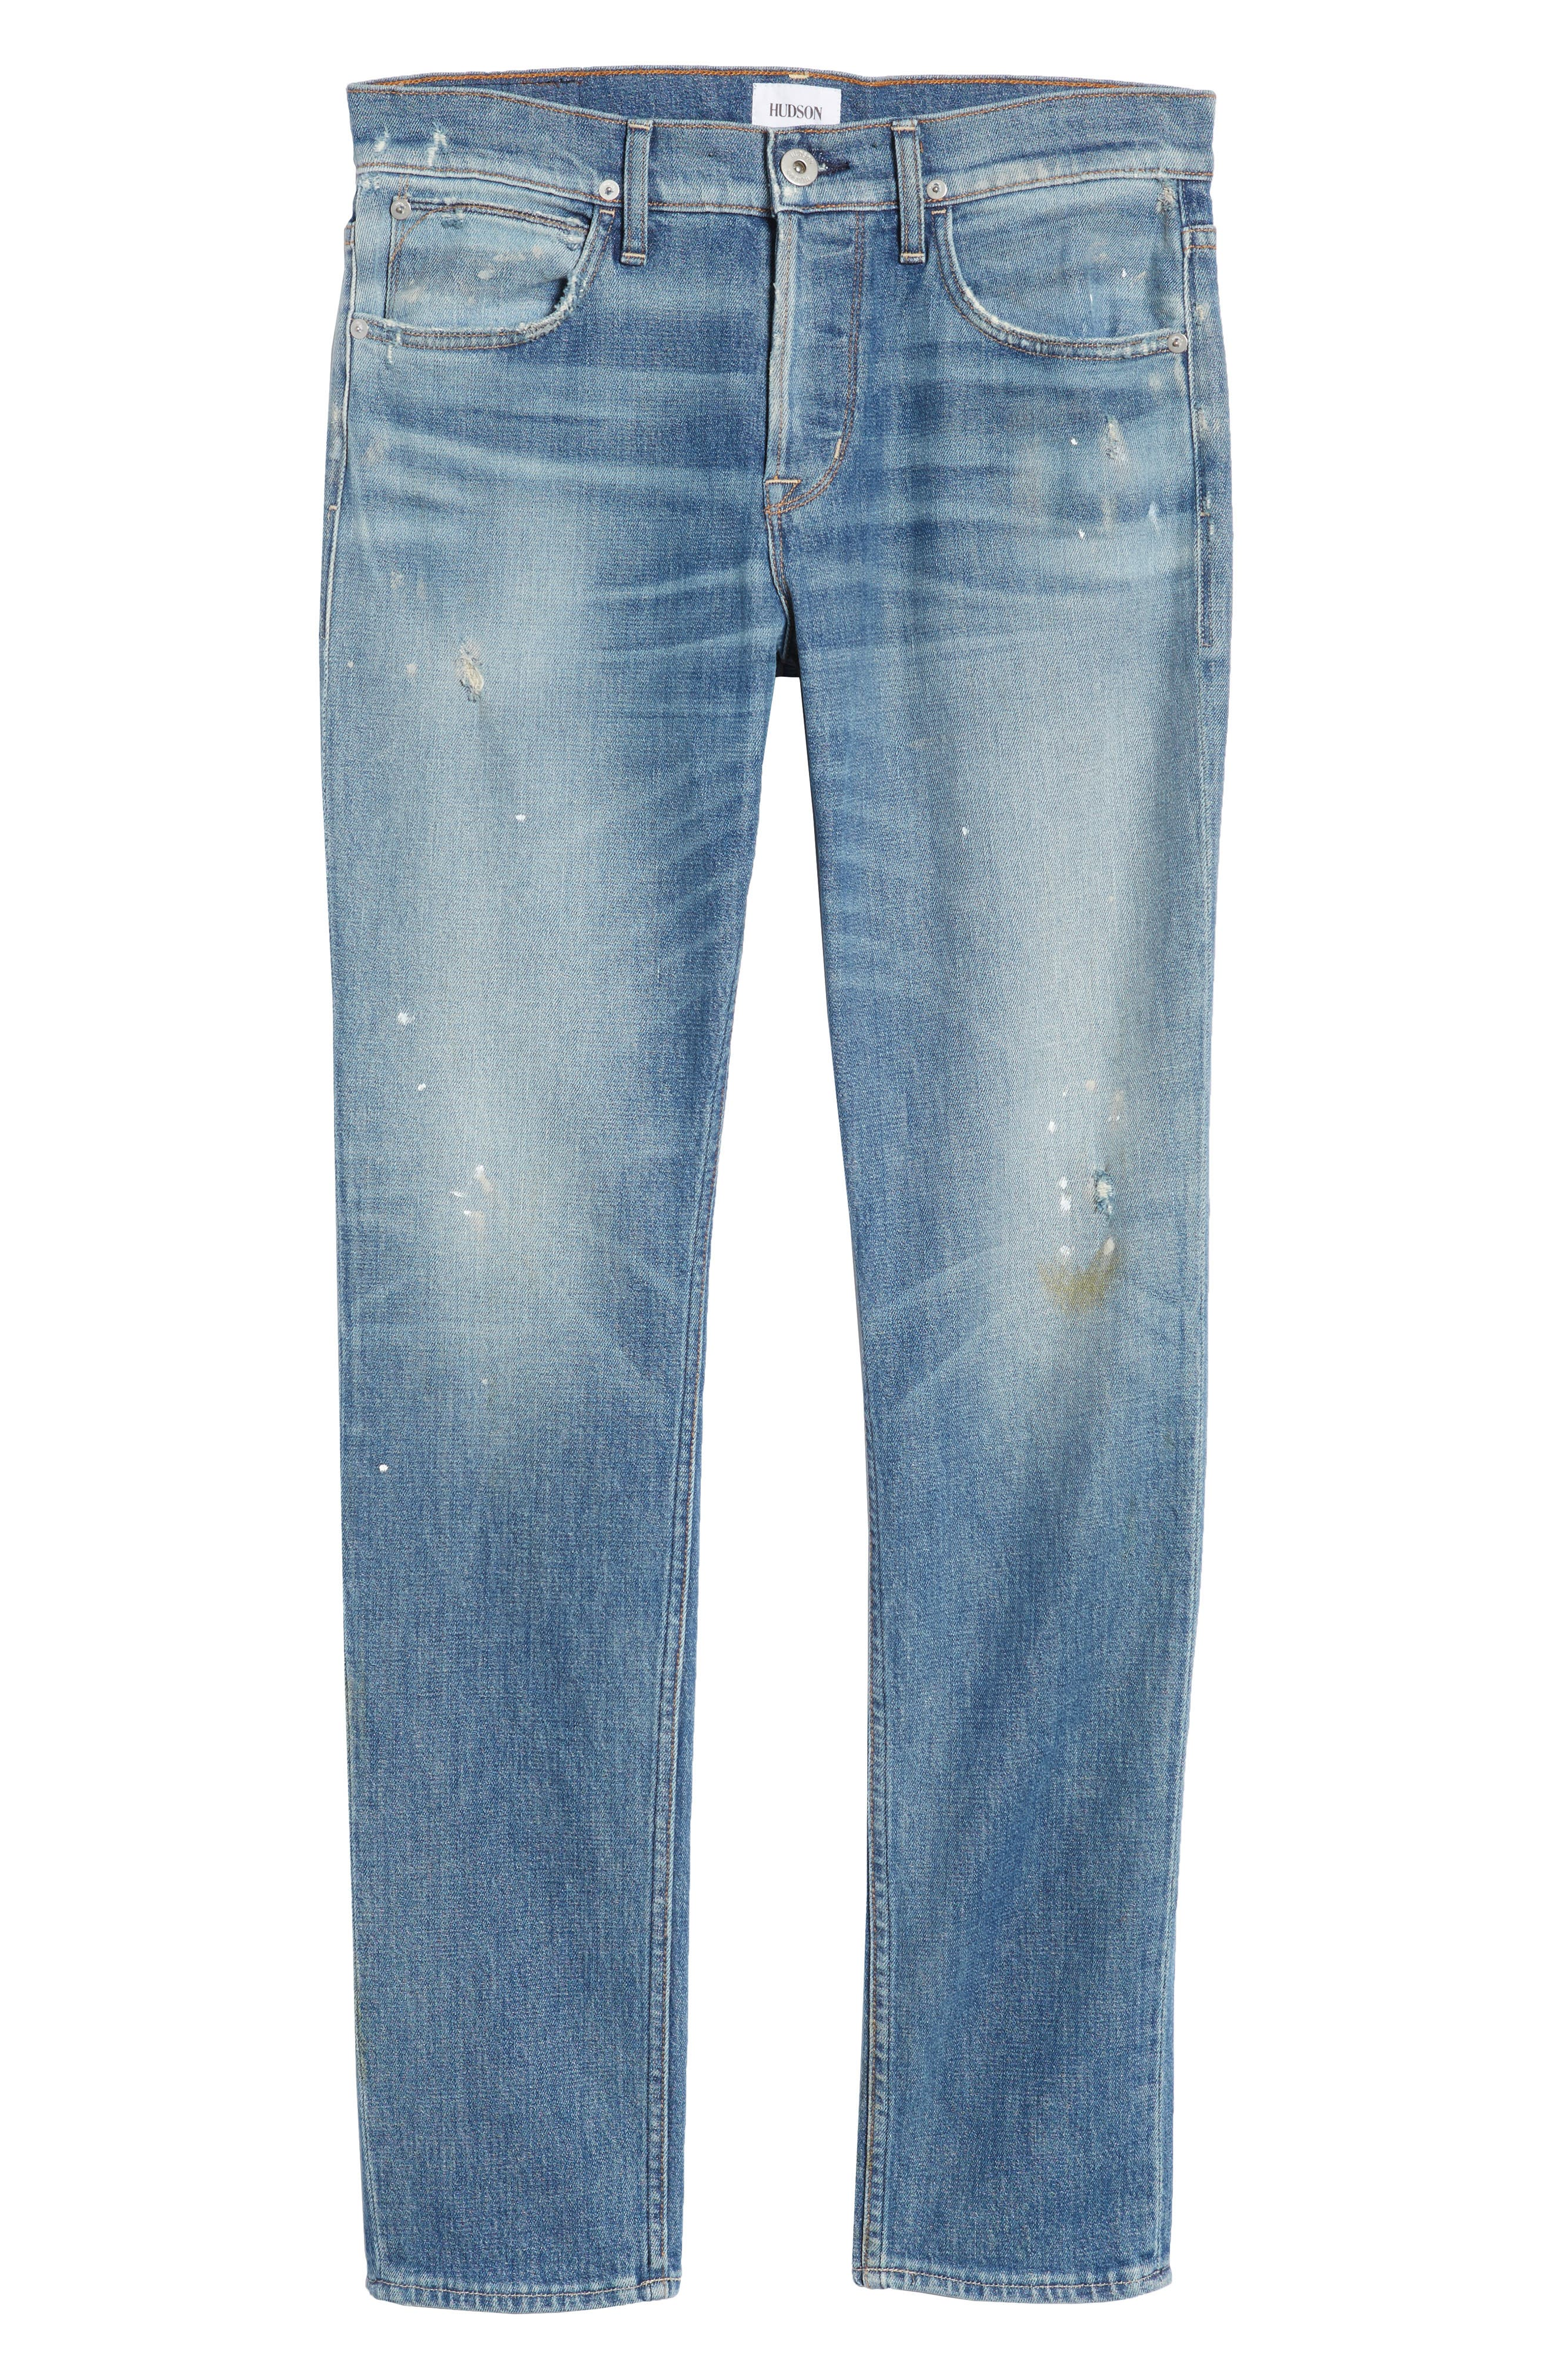 Axl Skinny Fit Jeans,                             Alternate thumbnail 6, color,                             Intoxicate